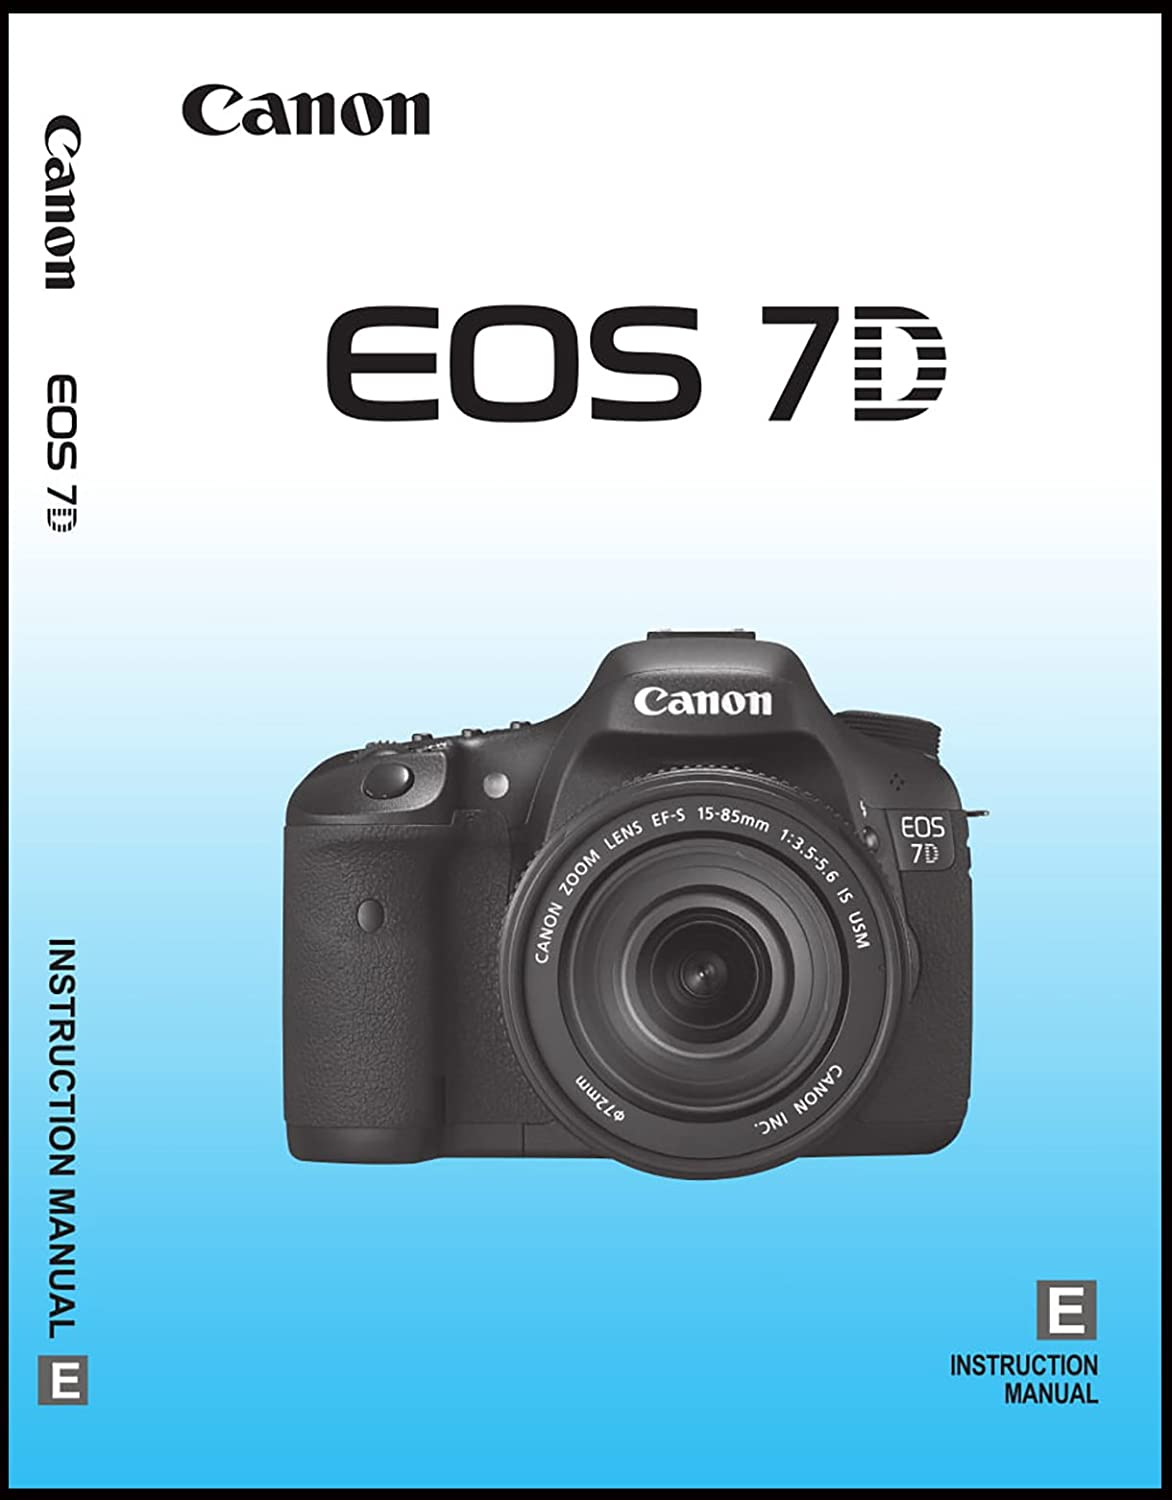 Amazon.com: Big Mike's Canon EOS 7D Digital Camera User's Instruction Manual:  Home Improvement